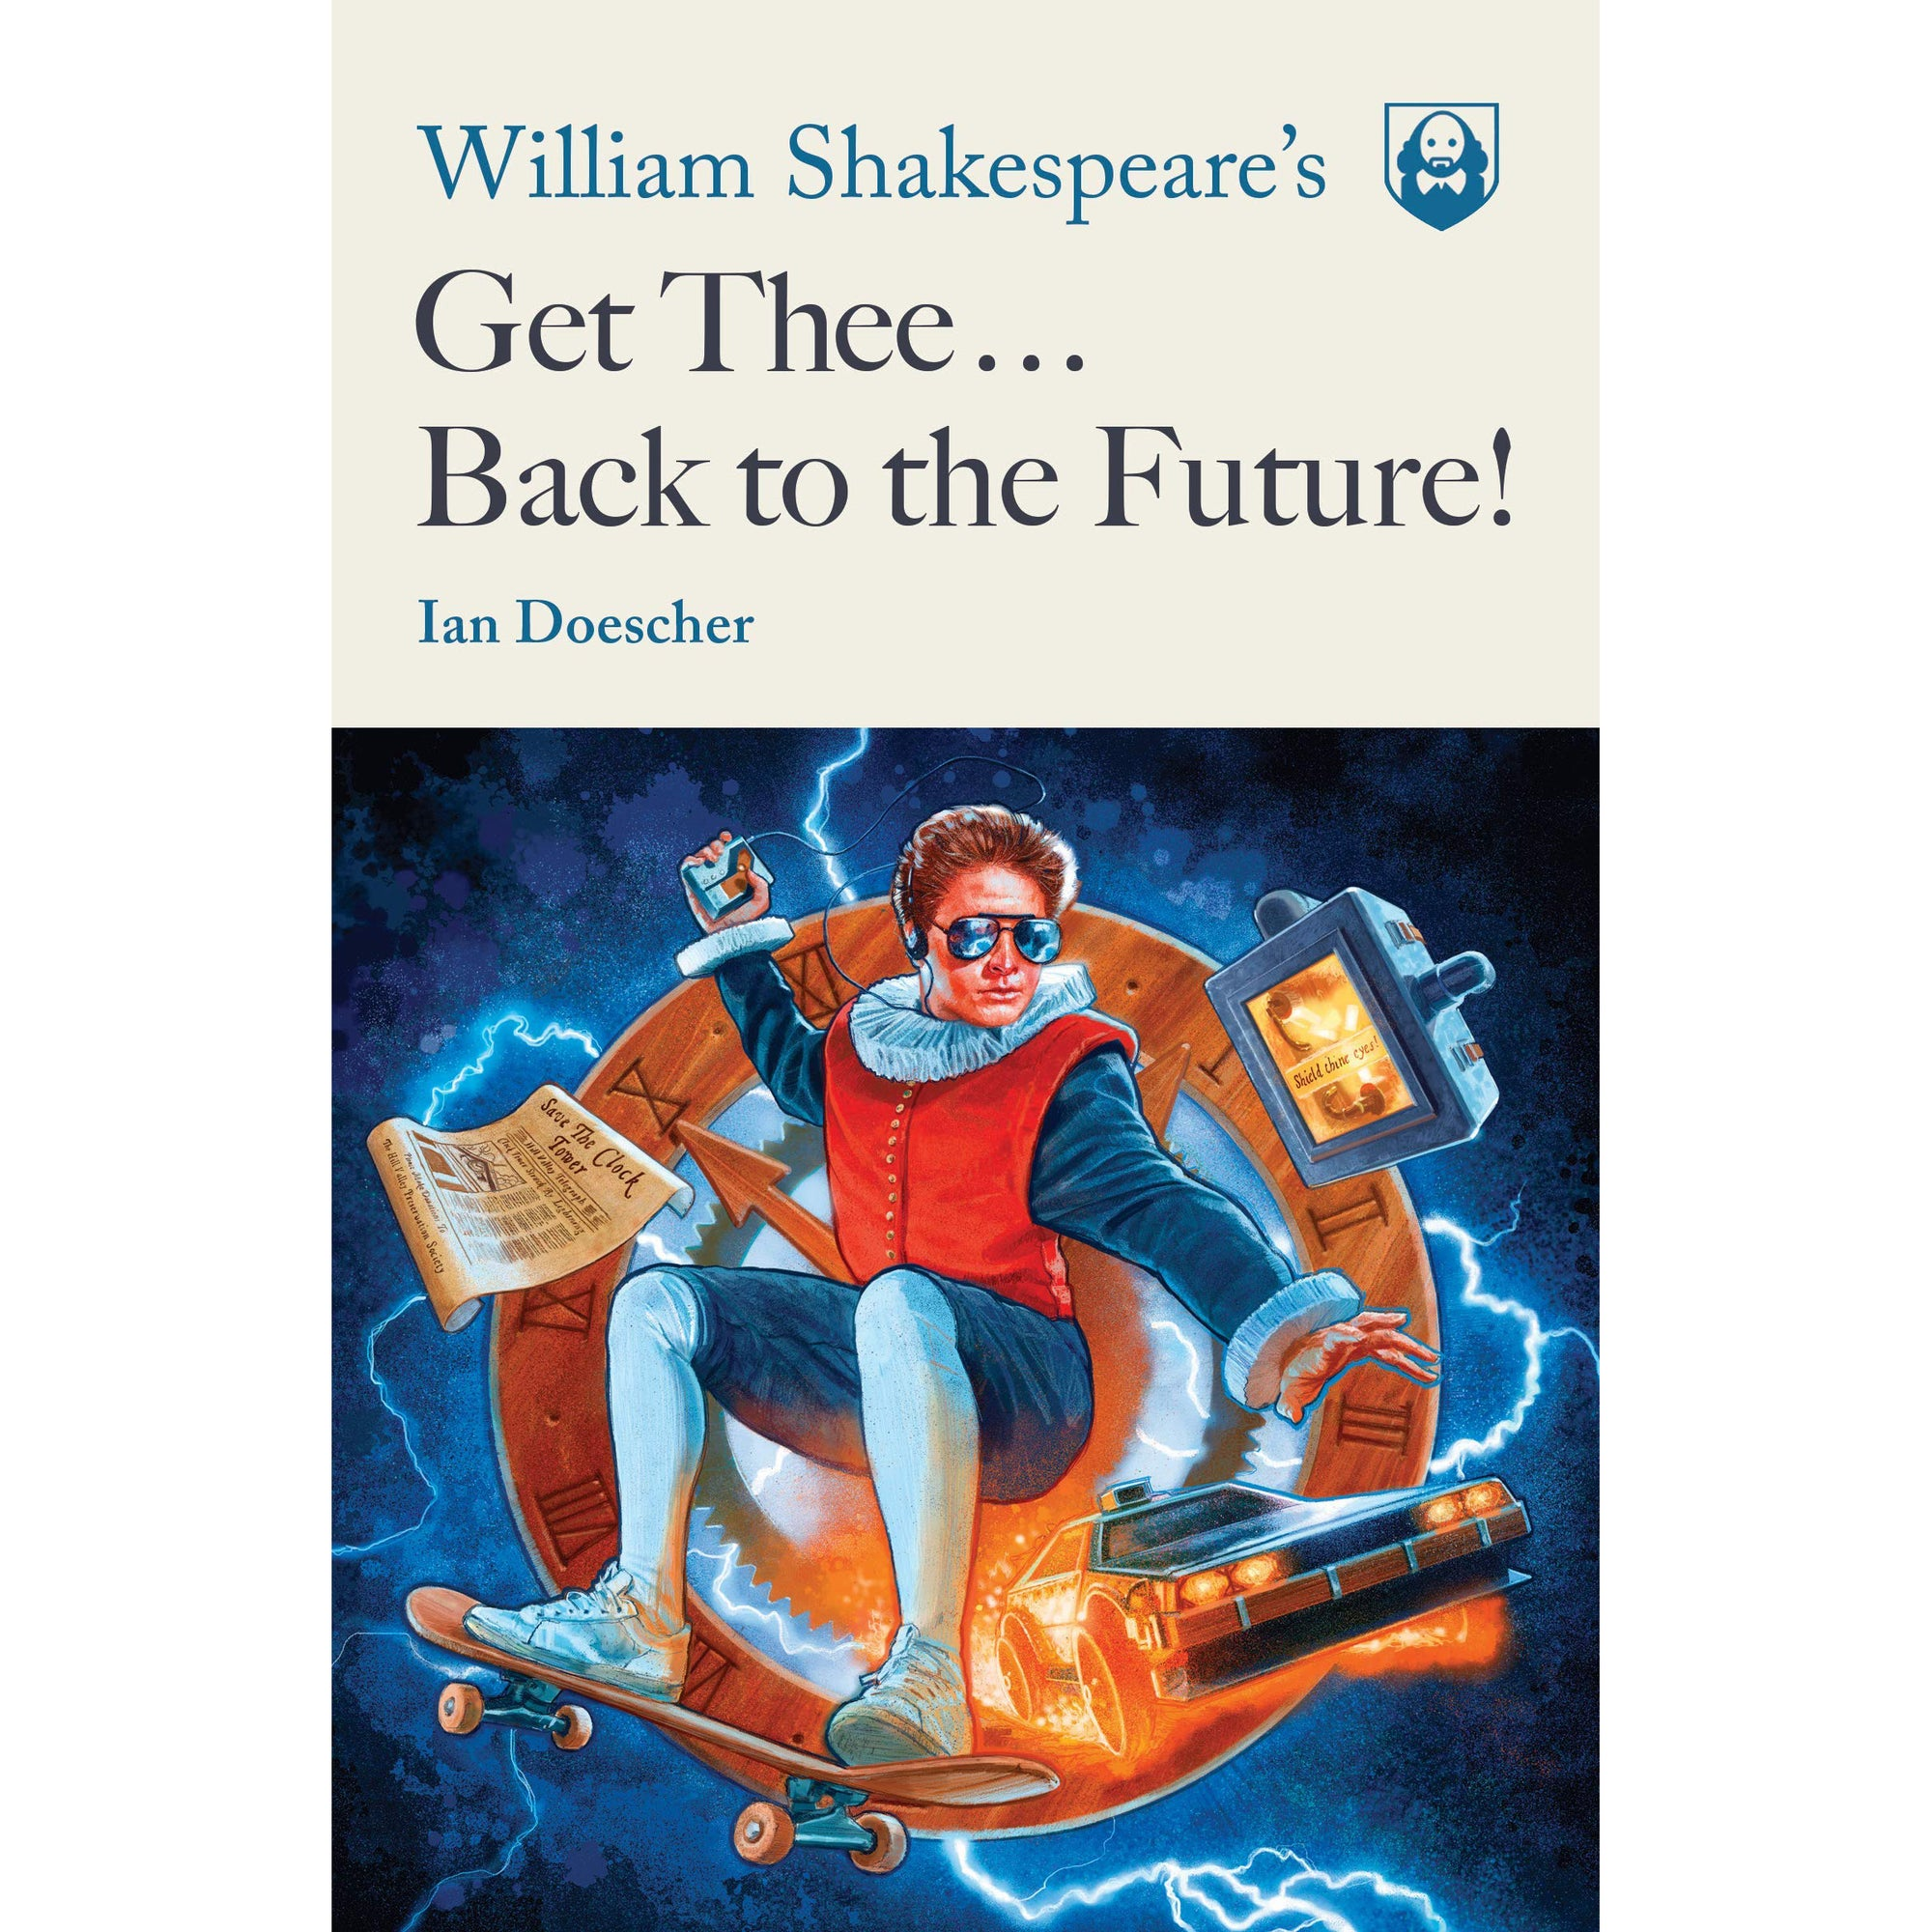 Cover of William Shakespeare's Get Thee Back to the Future!